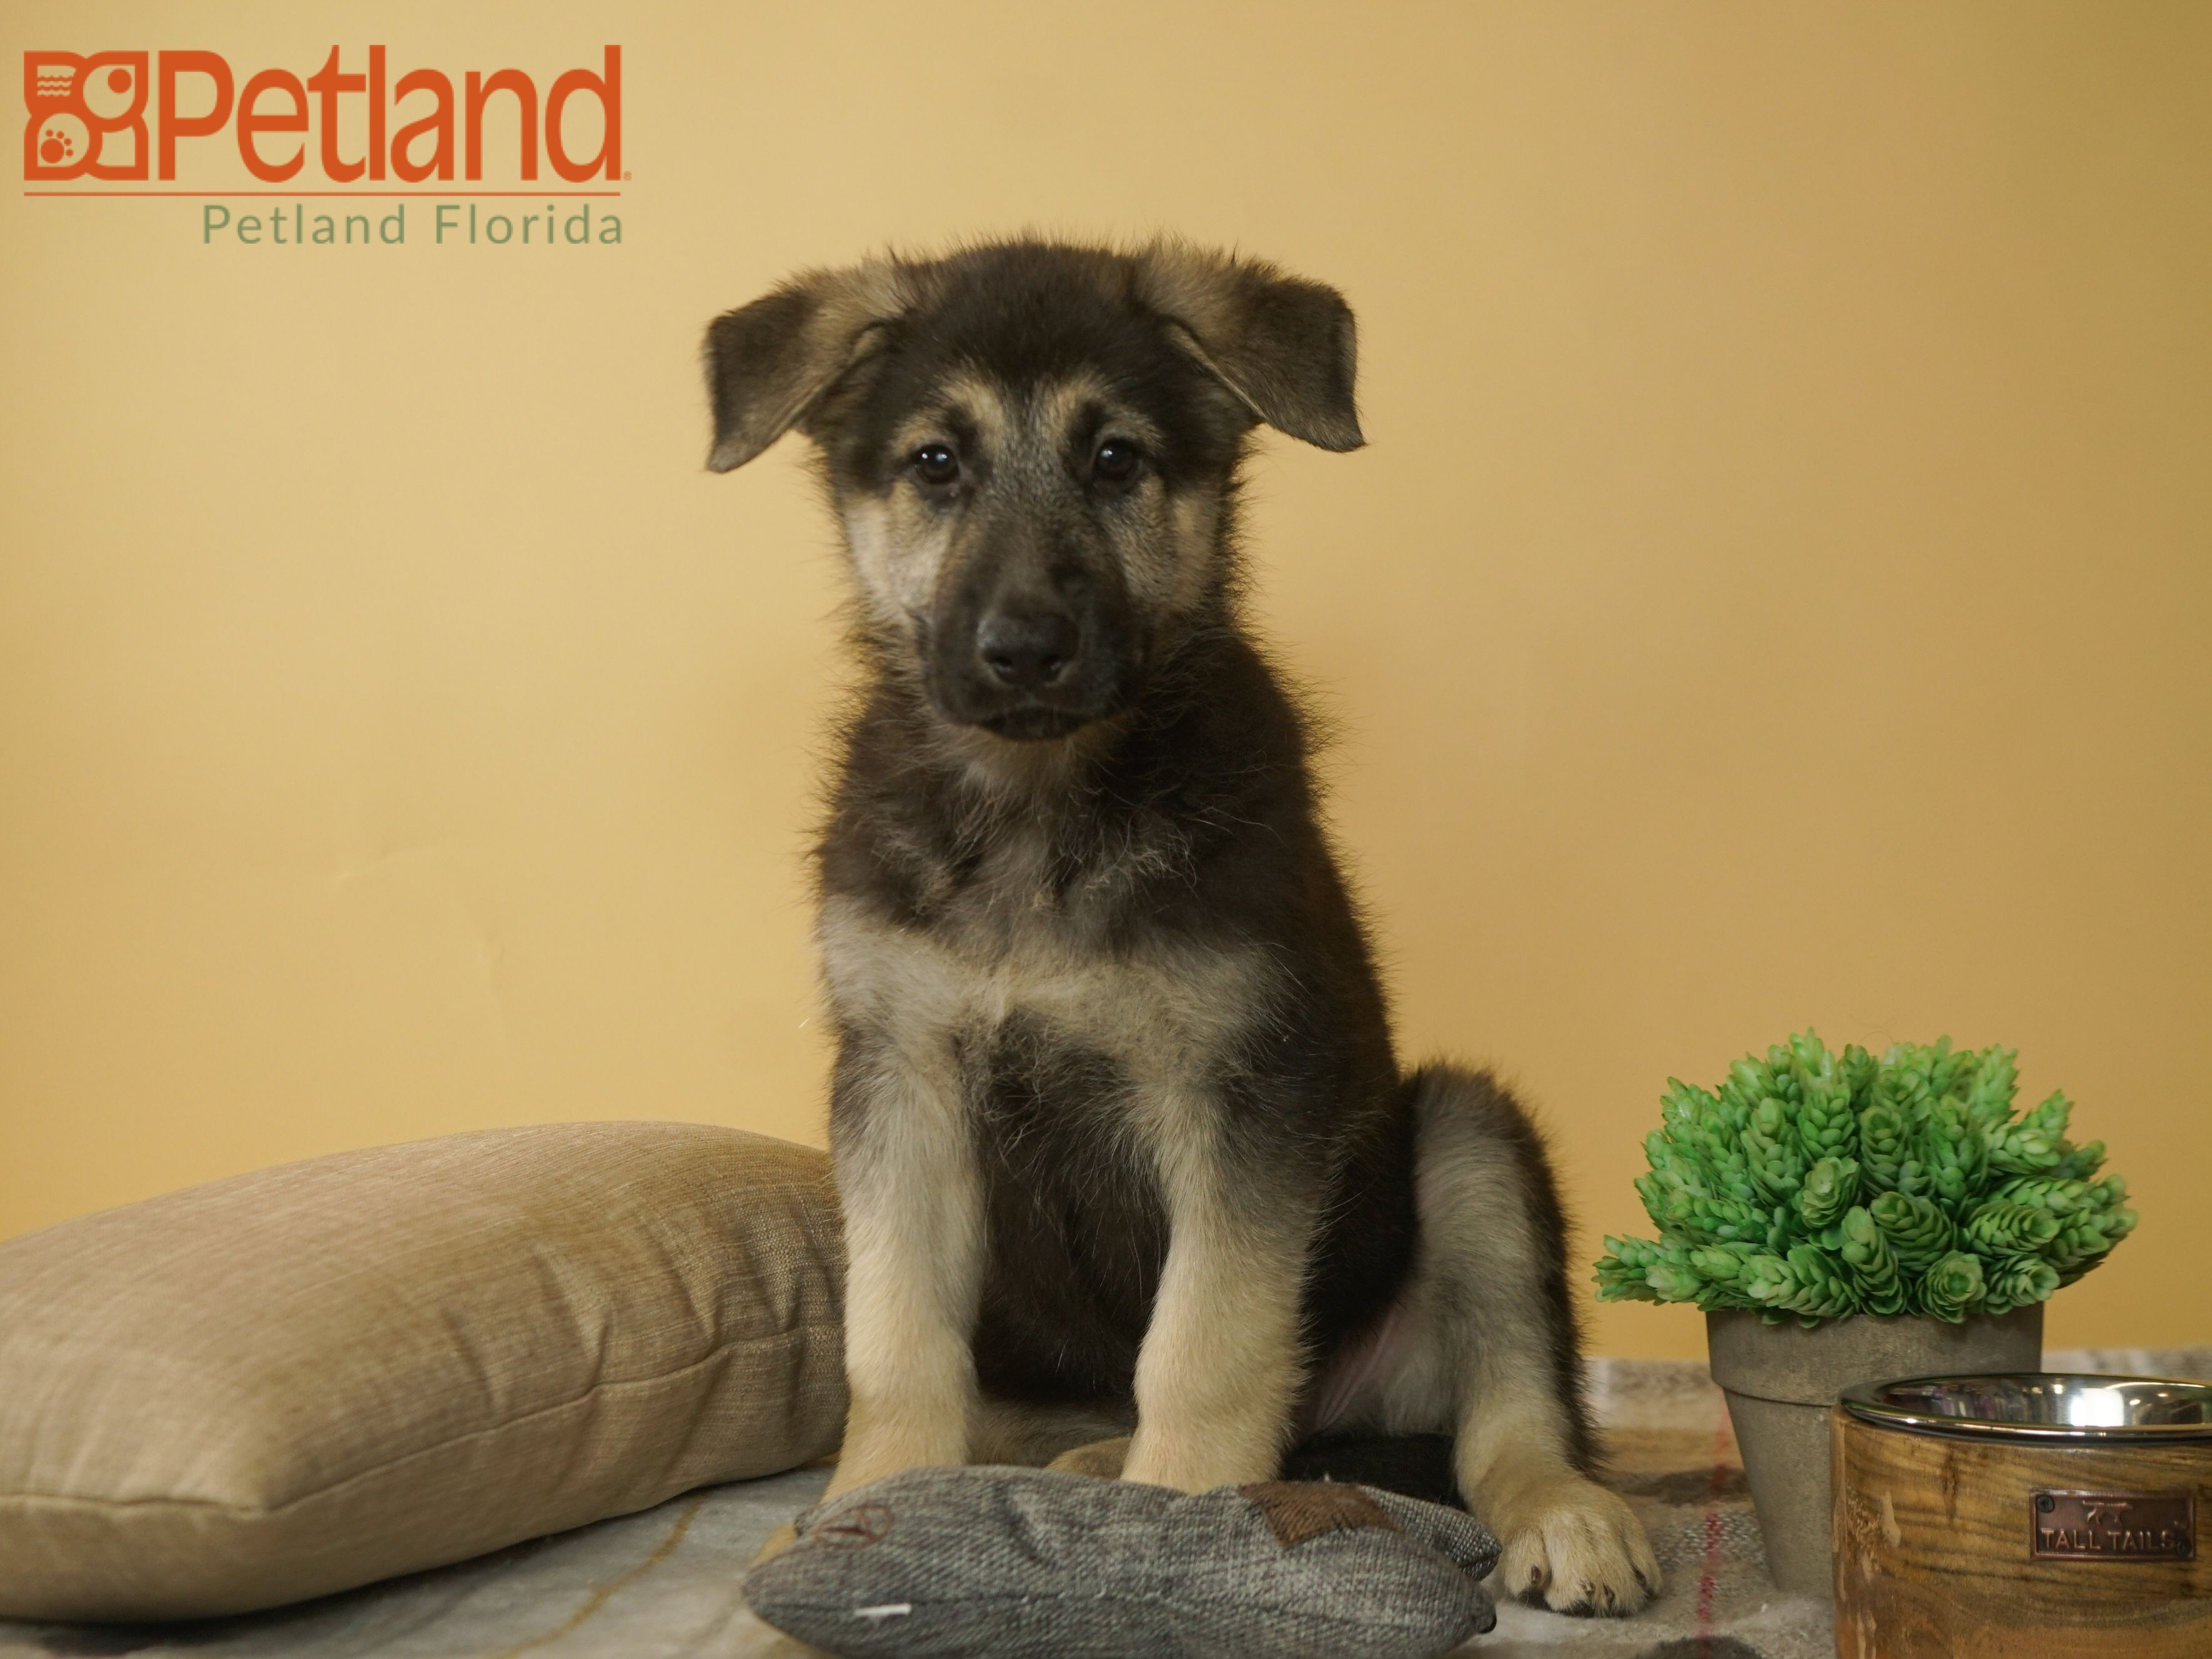 A German Shepherd Is An Adorable Lifetime Friend Find Your Perfect Match At Petland Largo Germanshepherd Puppy Do Puppy Friends Puppies Puppies For Sale